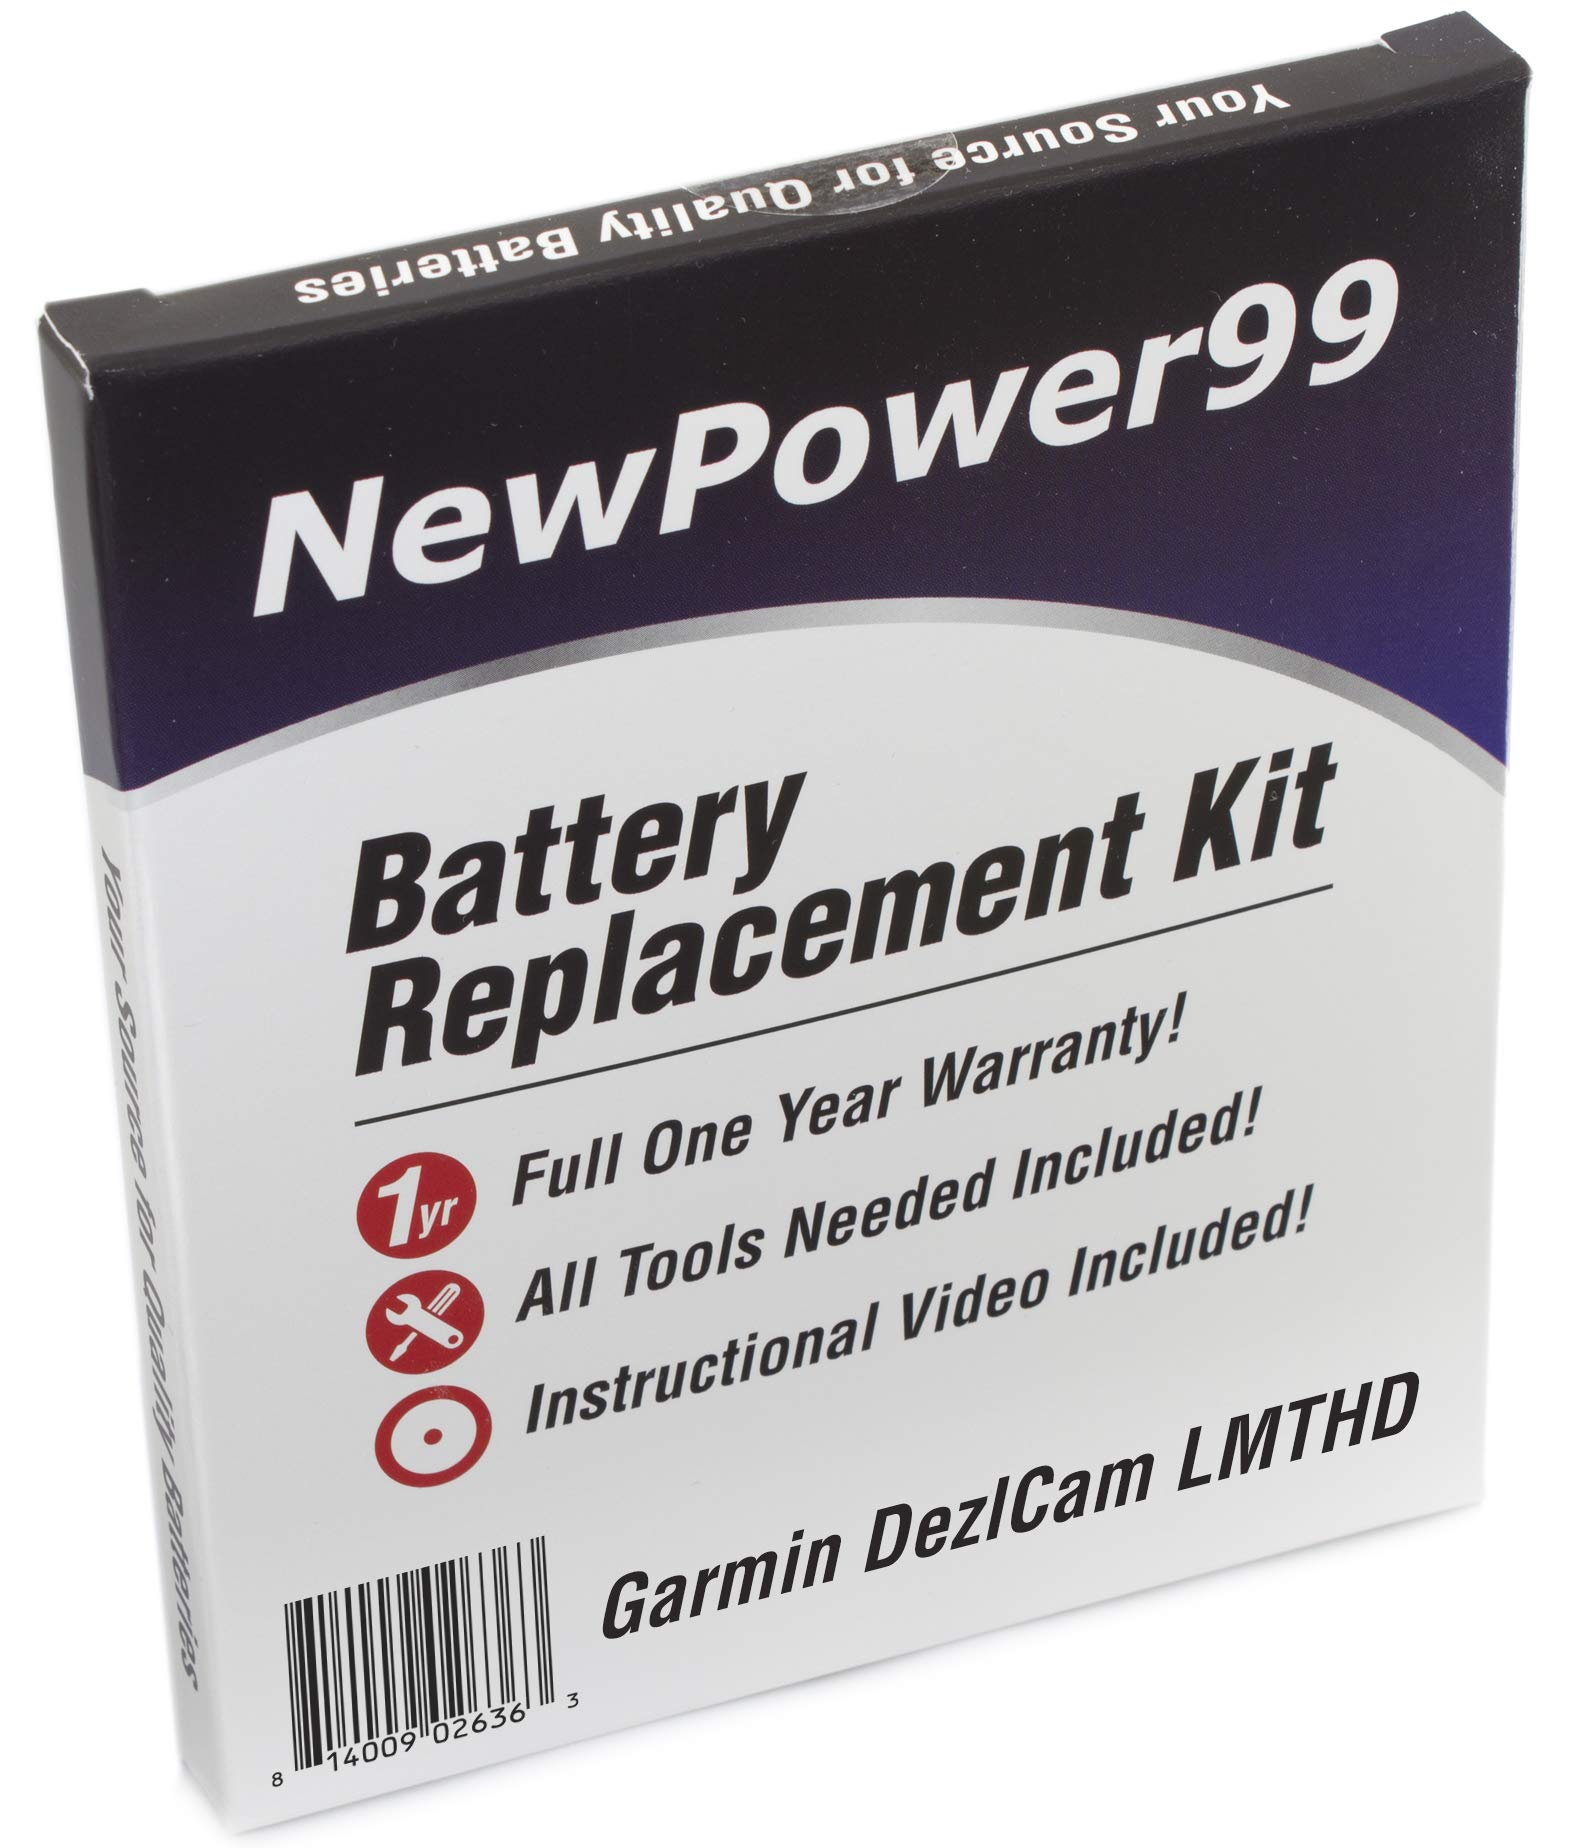 NewPower99 Battery Replacement Kit Battery Instructions and Tools Compatible with Garmin DezlCam LMTHD by NewPower99